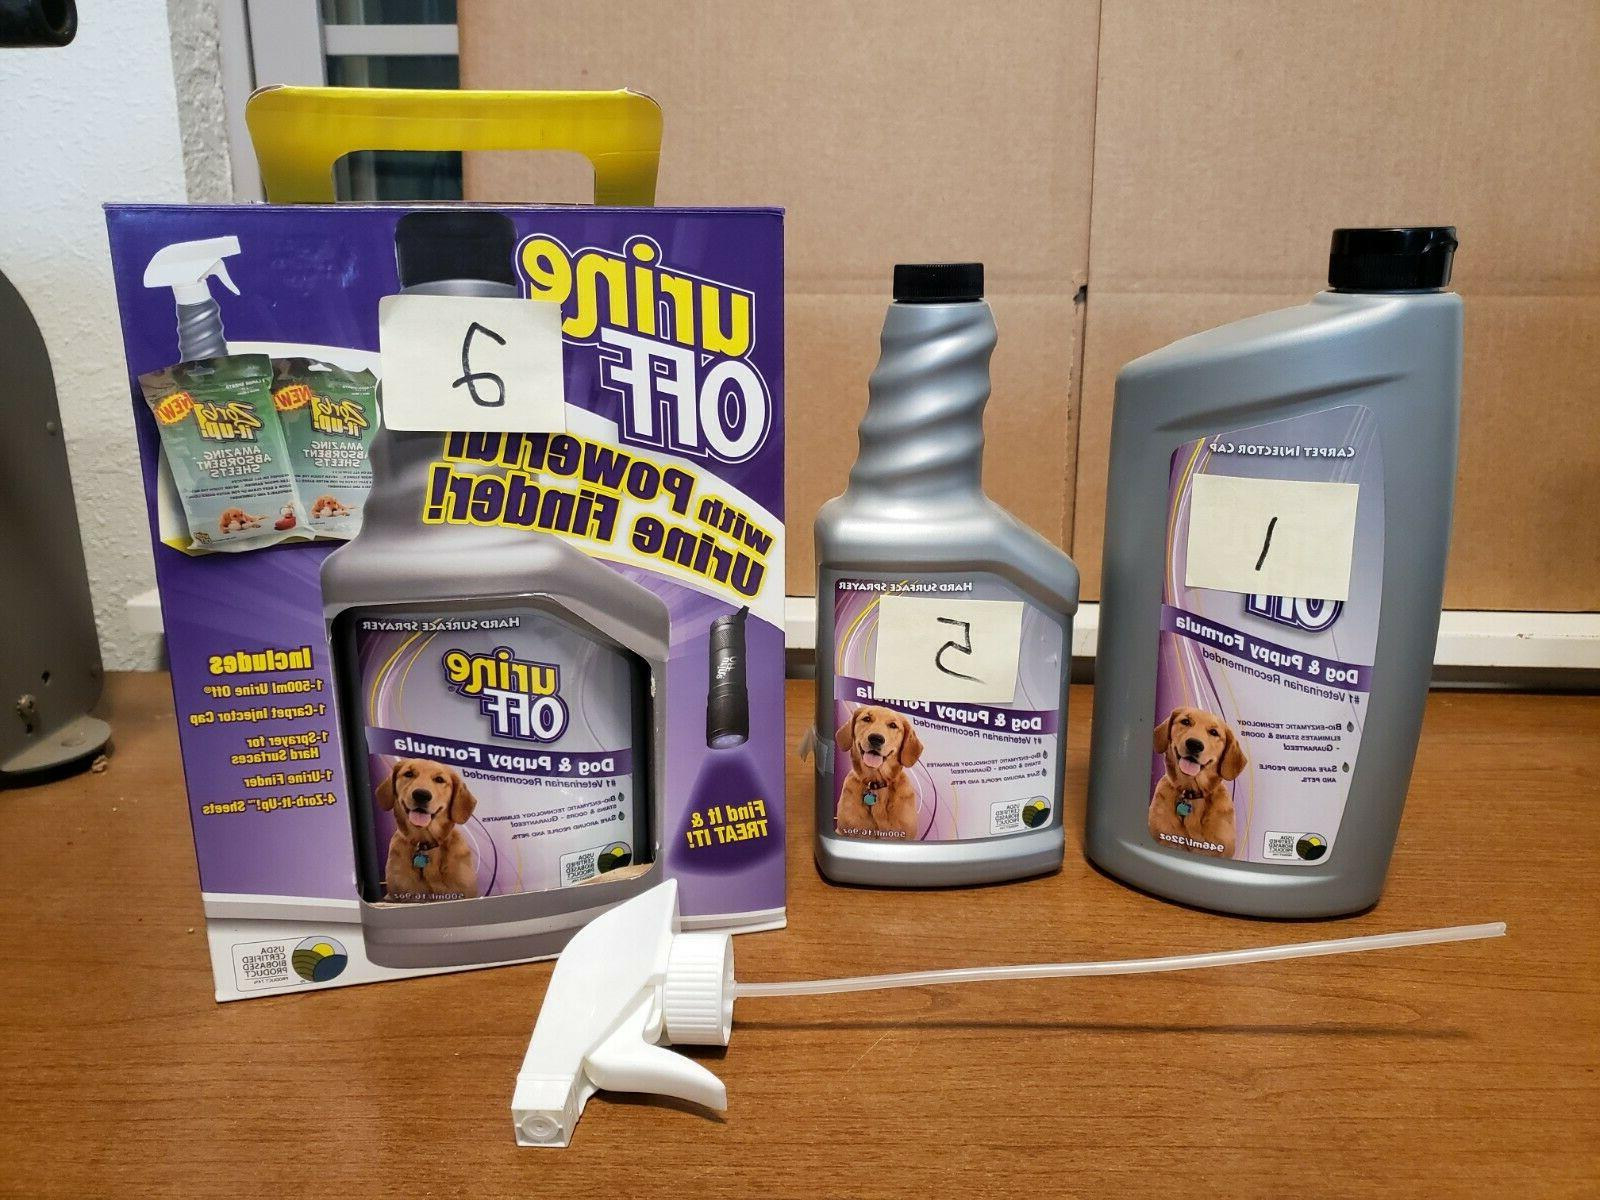 8 units odor and stain remover